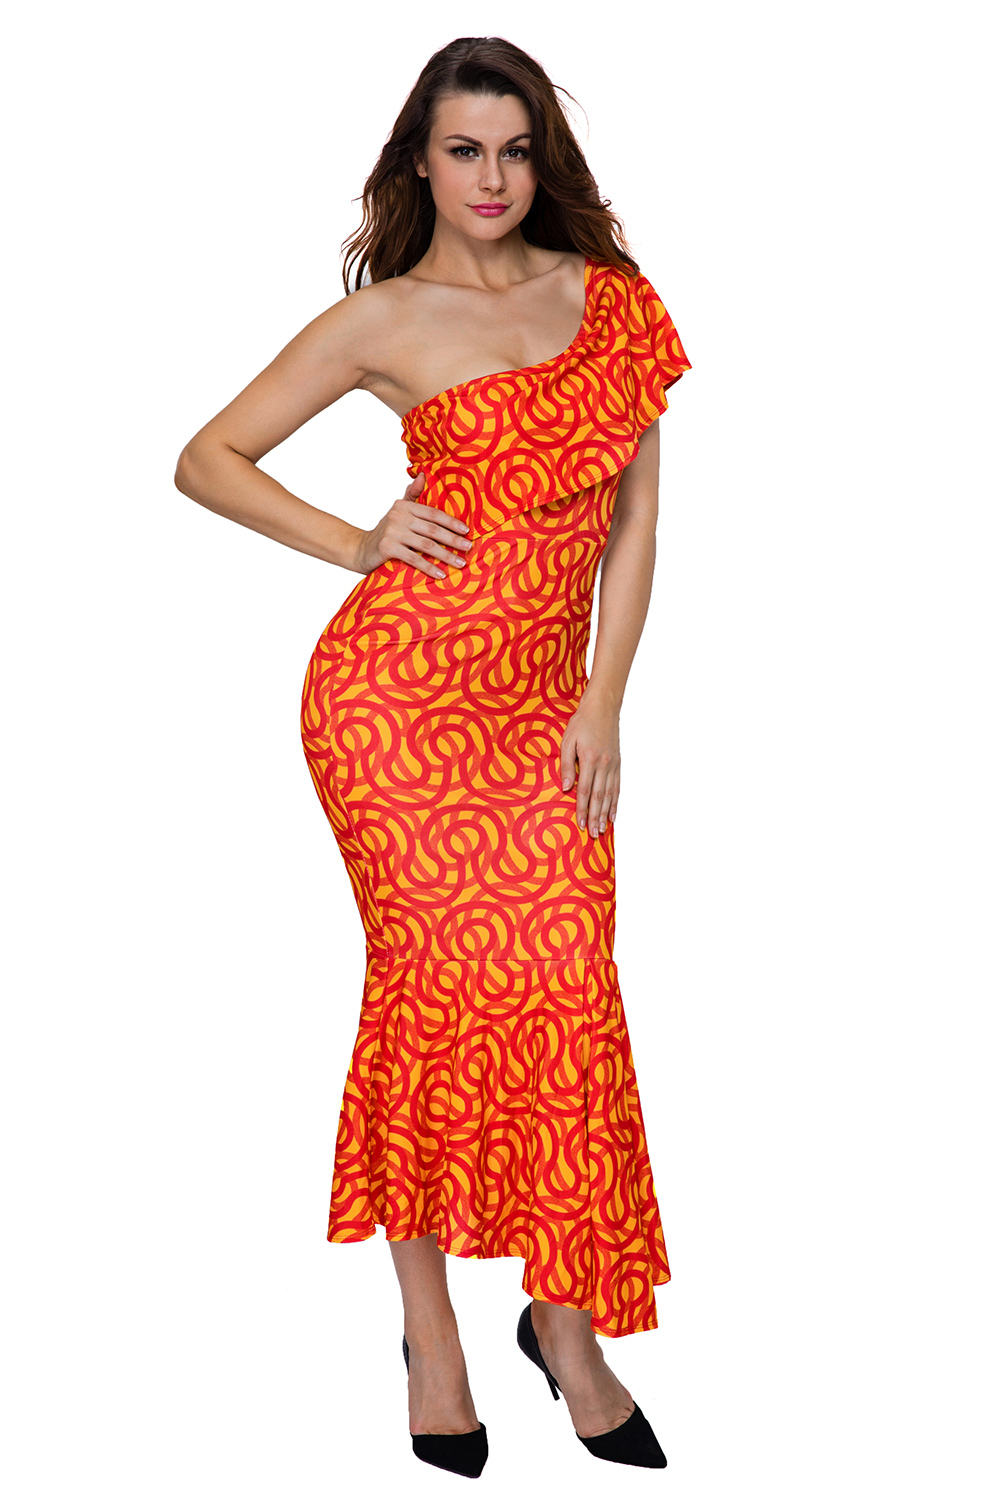 New Arrive Women Dresses Sexy Summer Special Design Single Shoulder Ruched Print One-Sleeved Mermaid Hem Africa Mid-Calf Dress